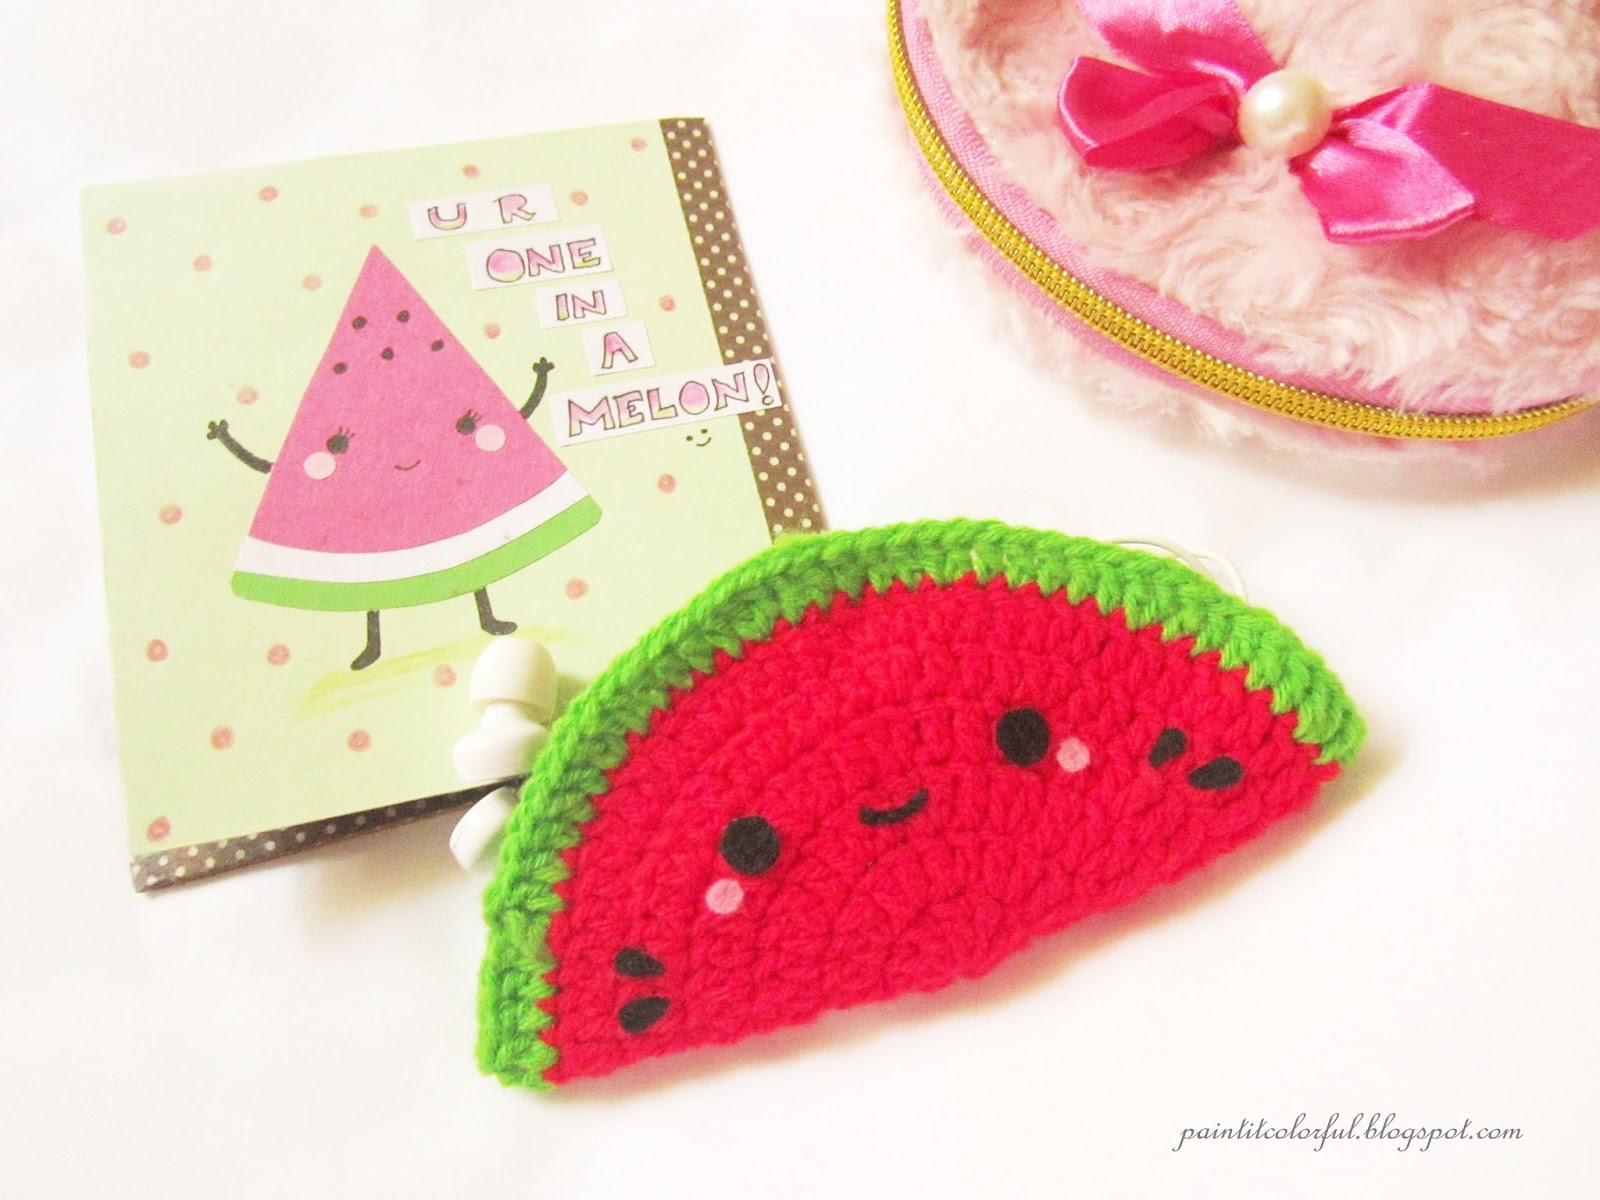 I Think The Vibrant Colors Of Watermelon Clearly Depicts The Radiance Of  Summer So Here's A Little Diy On How To Make A Watermelon Headphone Holder